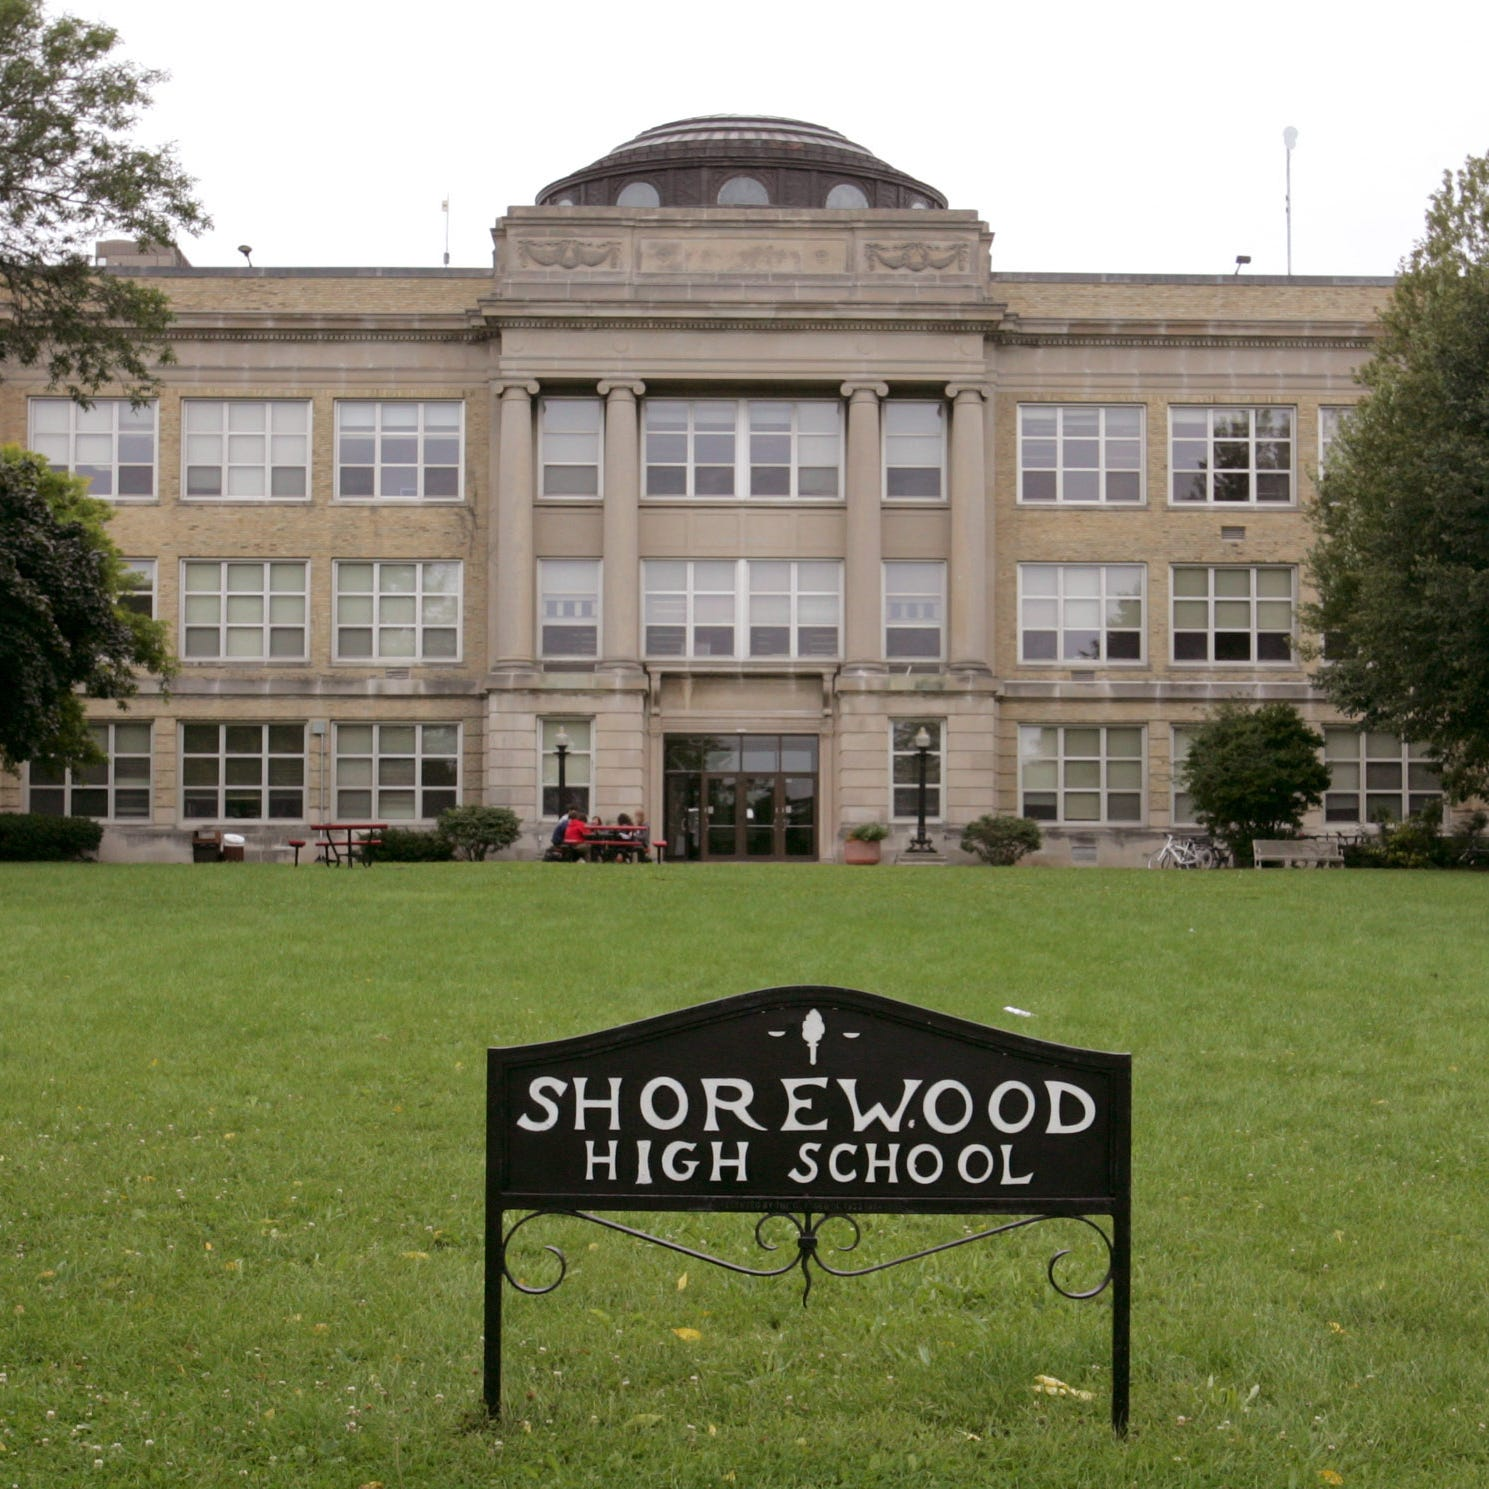 Shorewood High cancels 'To Kill a Mockingbird'; critics planned protest over use of racial slur